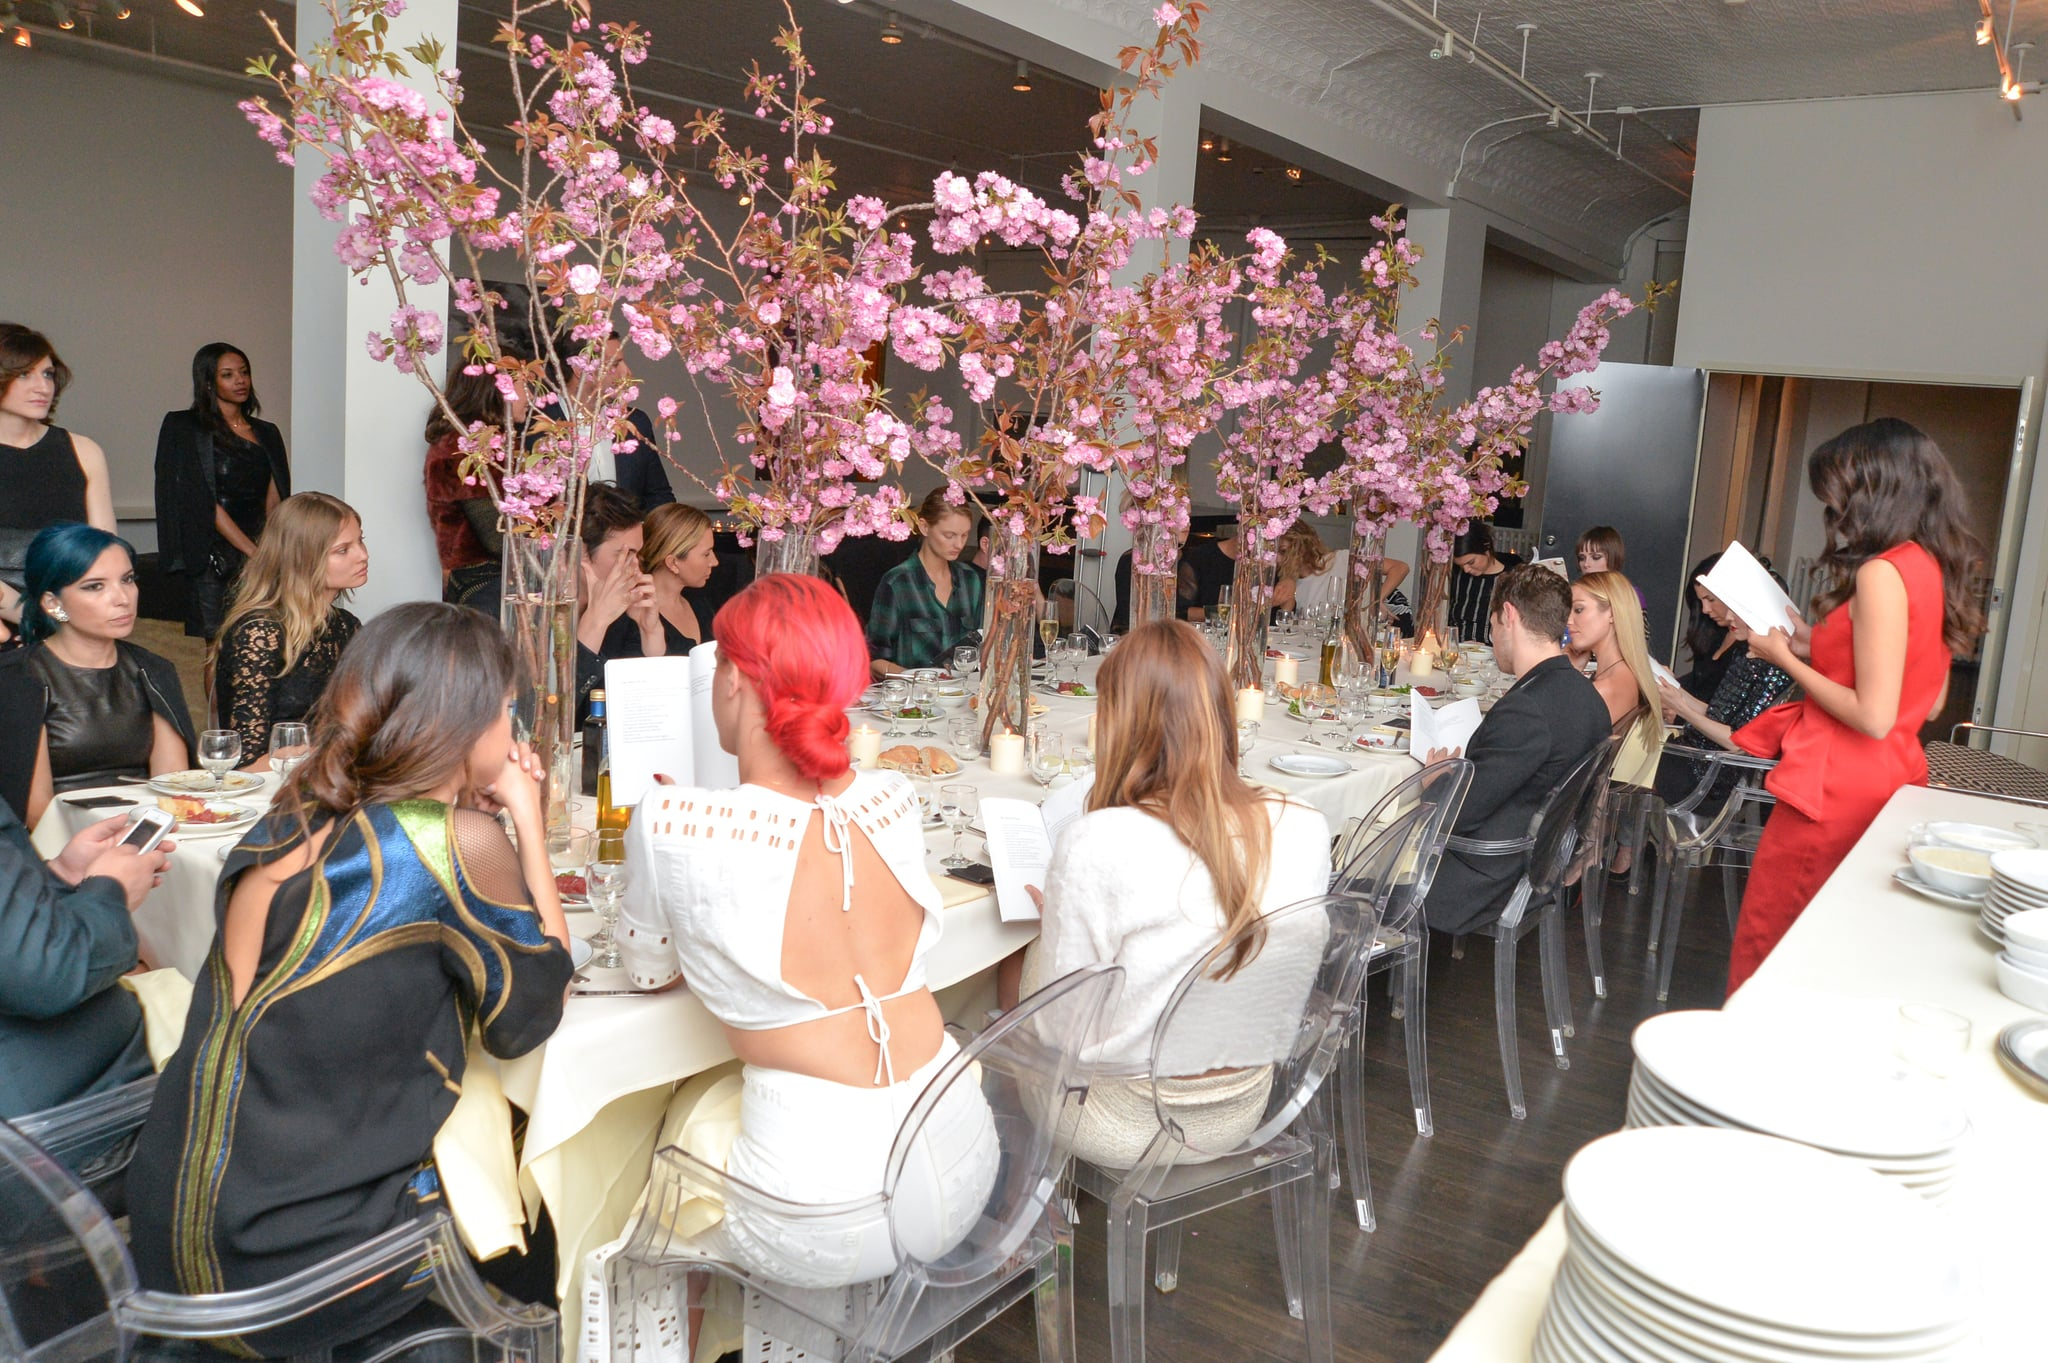 Selena and Kendall were seated at opposite sides of the big dinner table.